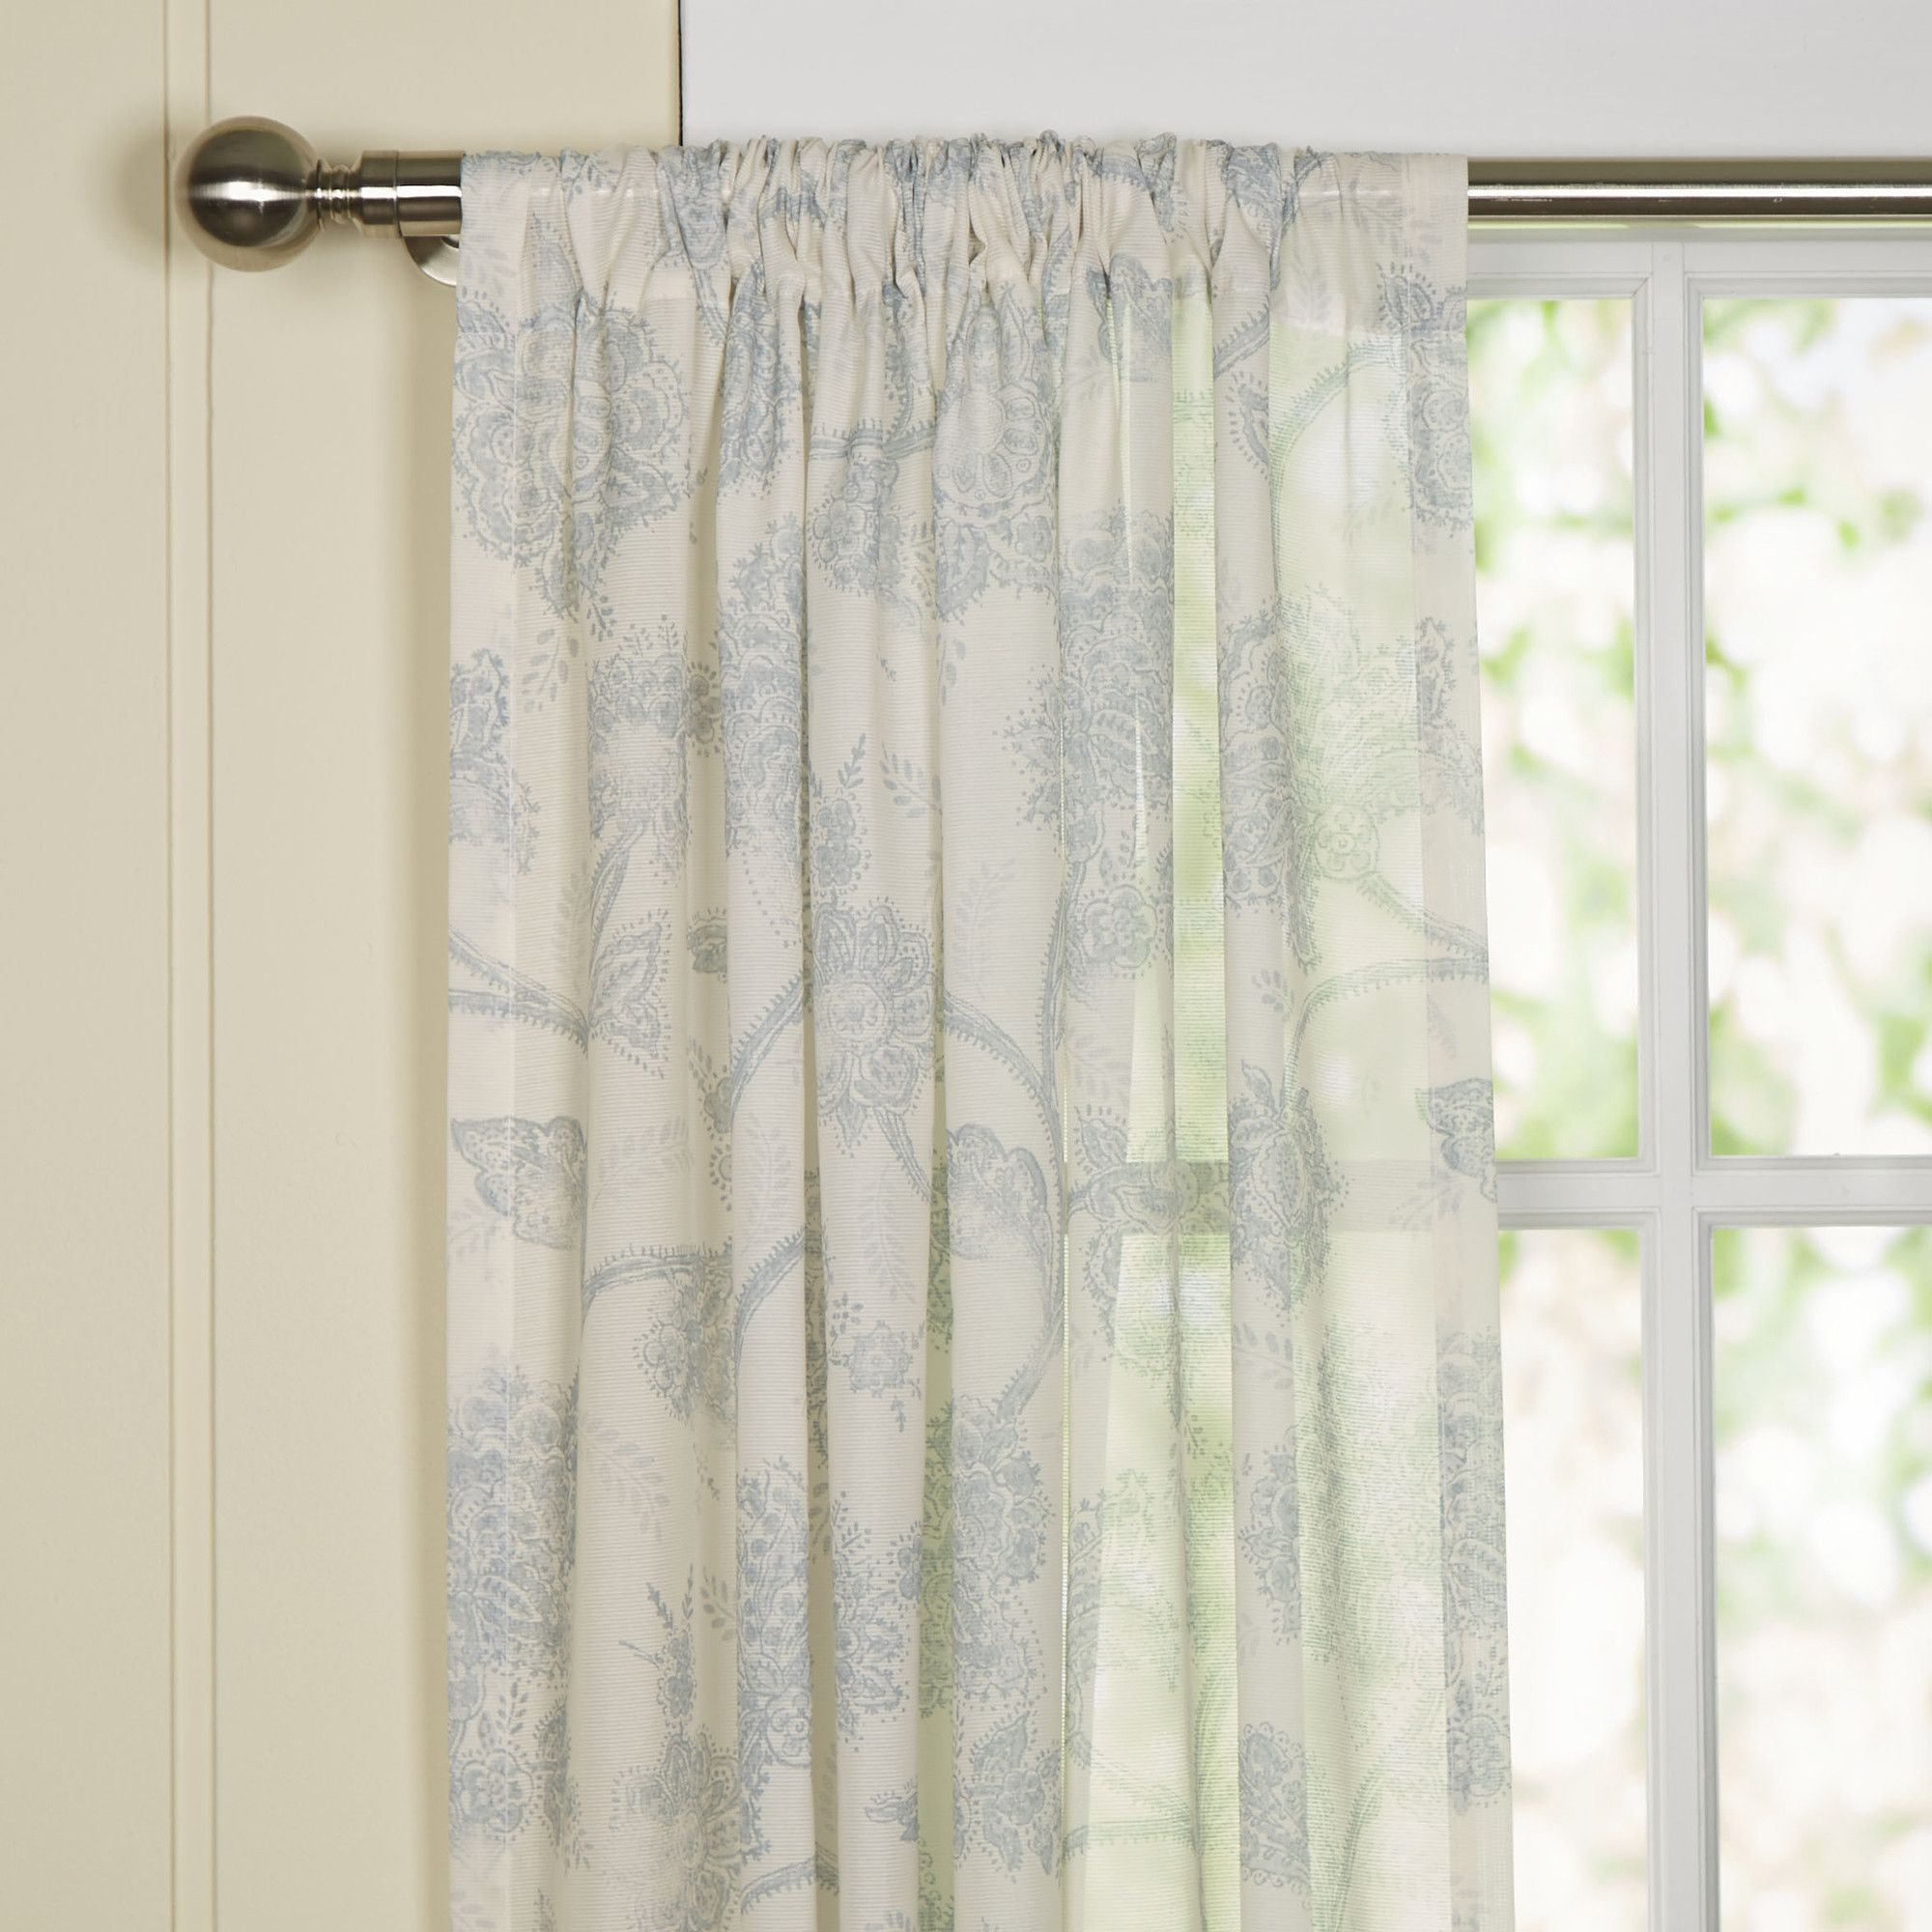 Slot top voile pair olive cheap green curtain voile uk delivery - Birch Lane Parisa Single Sheer Curtain Panel Reviews Birch Lane